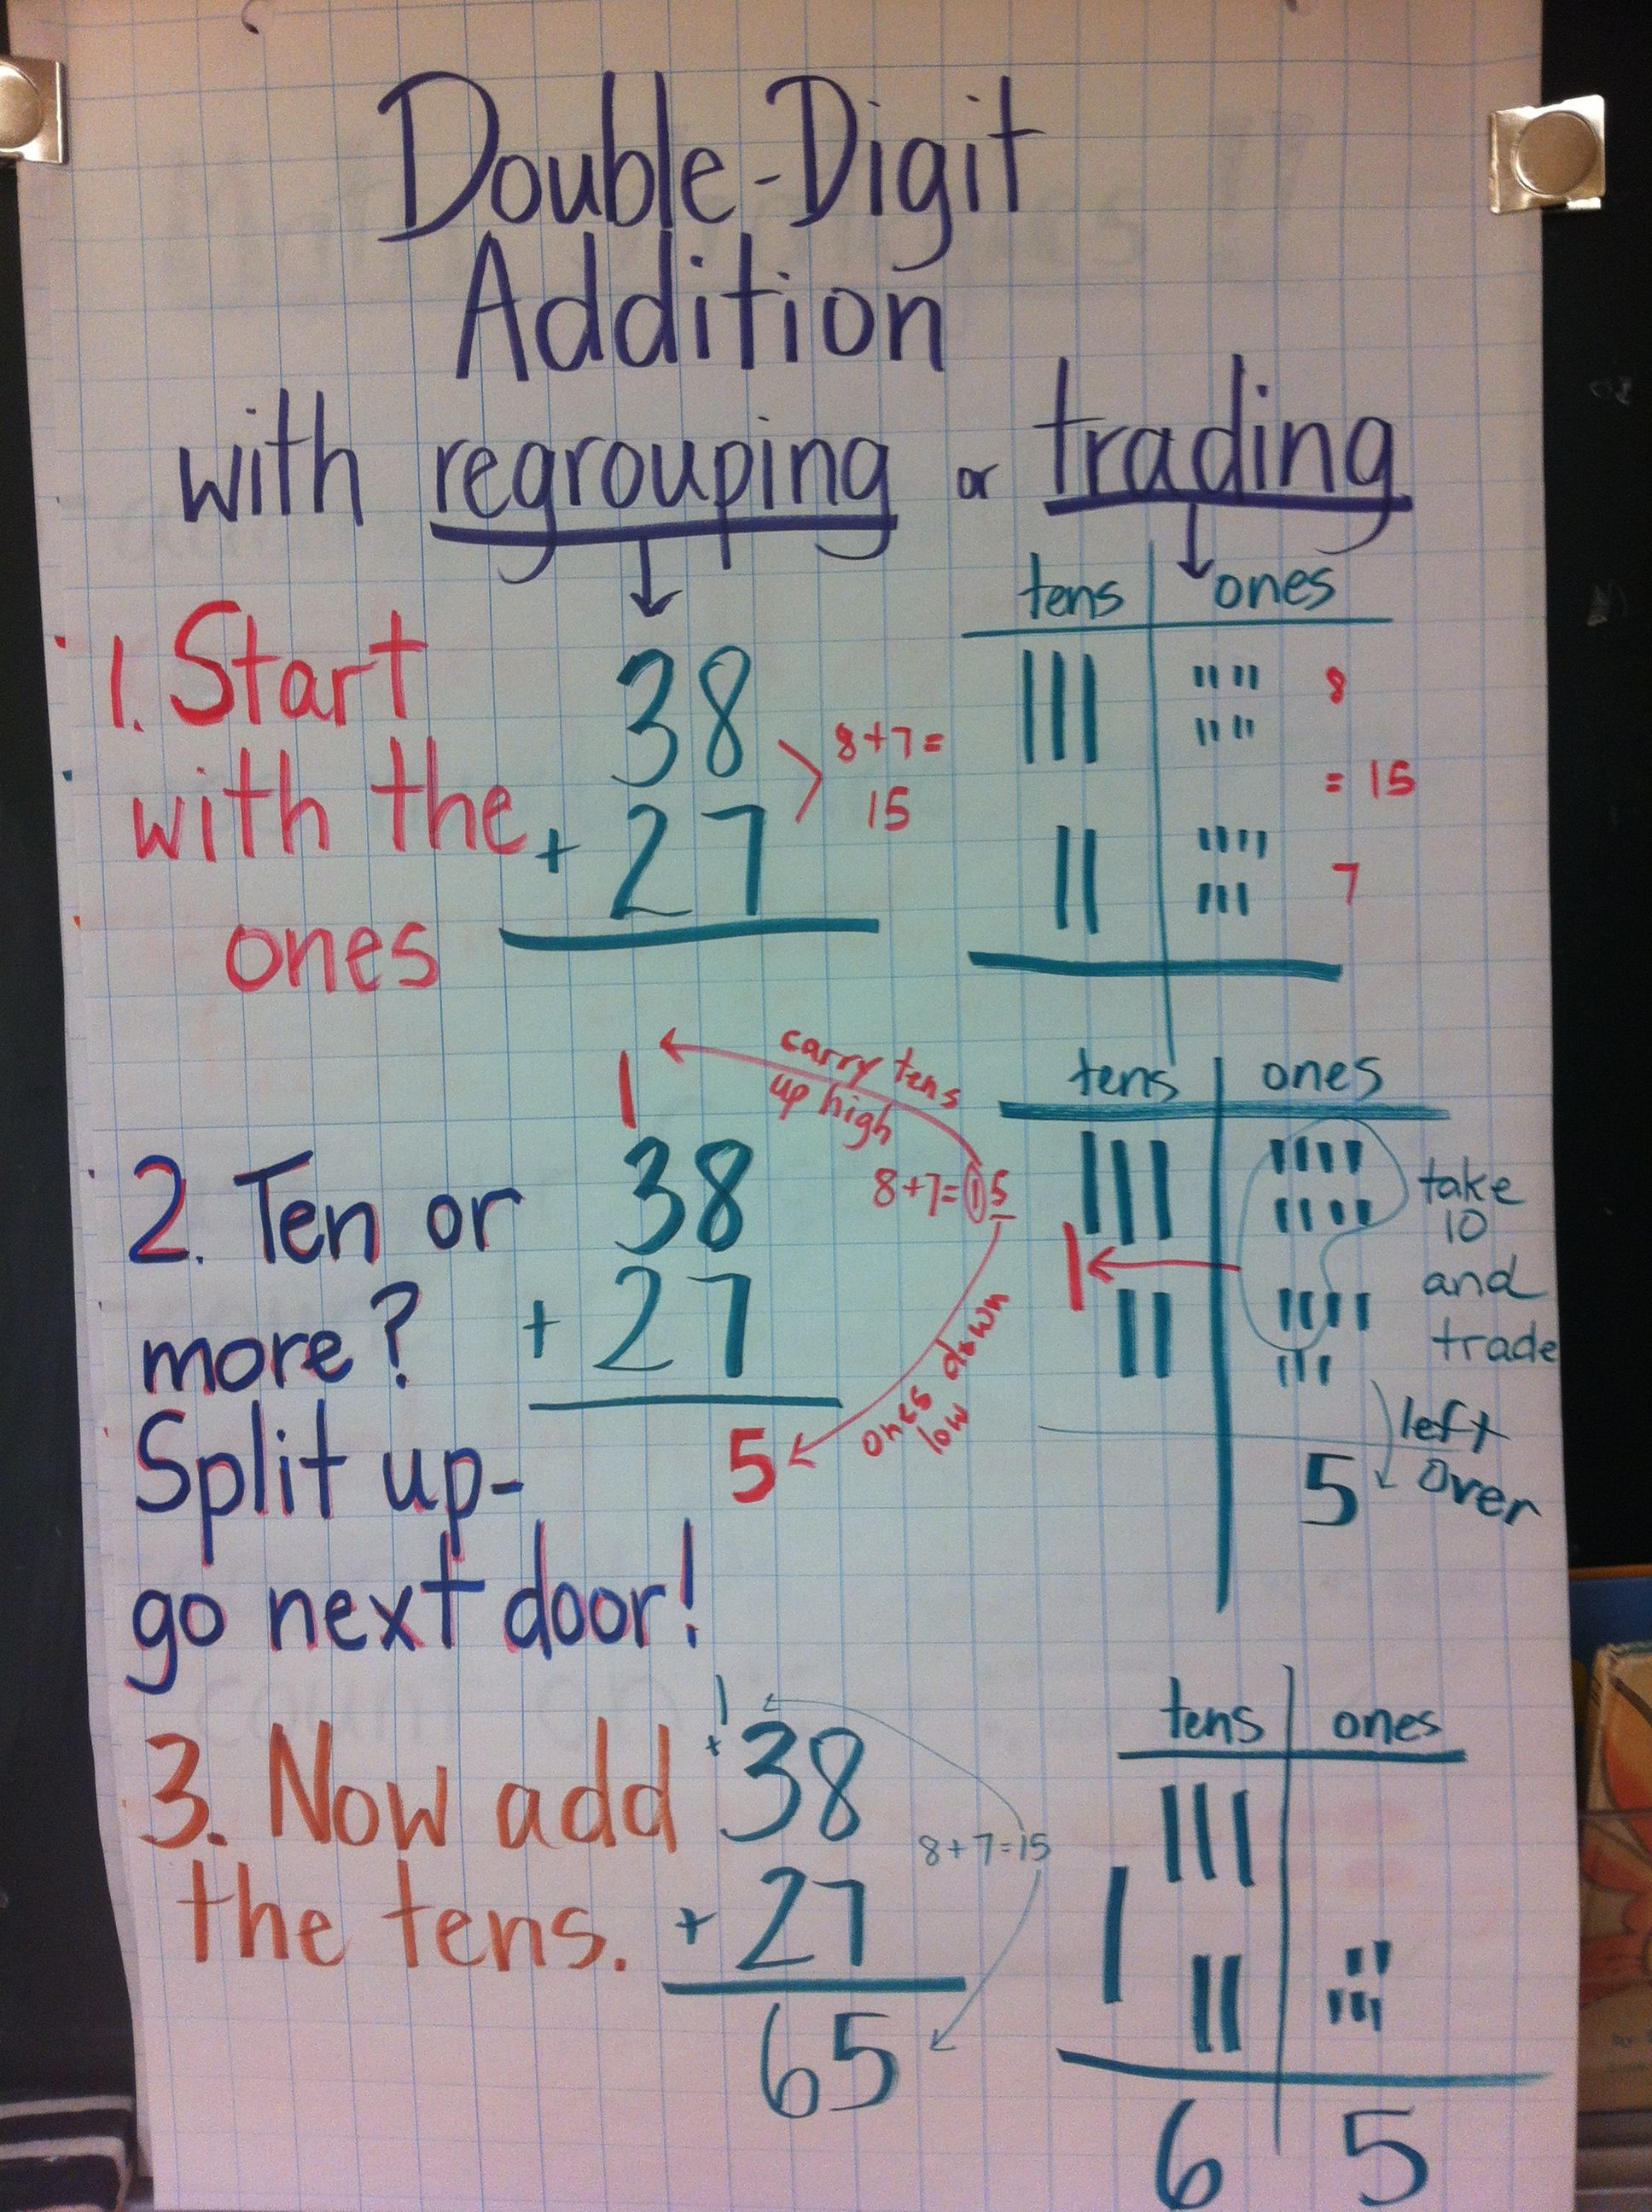 Double Digit Addition With Carrying Or Regrouping Or Trading